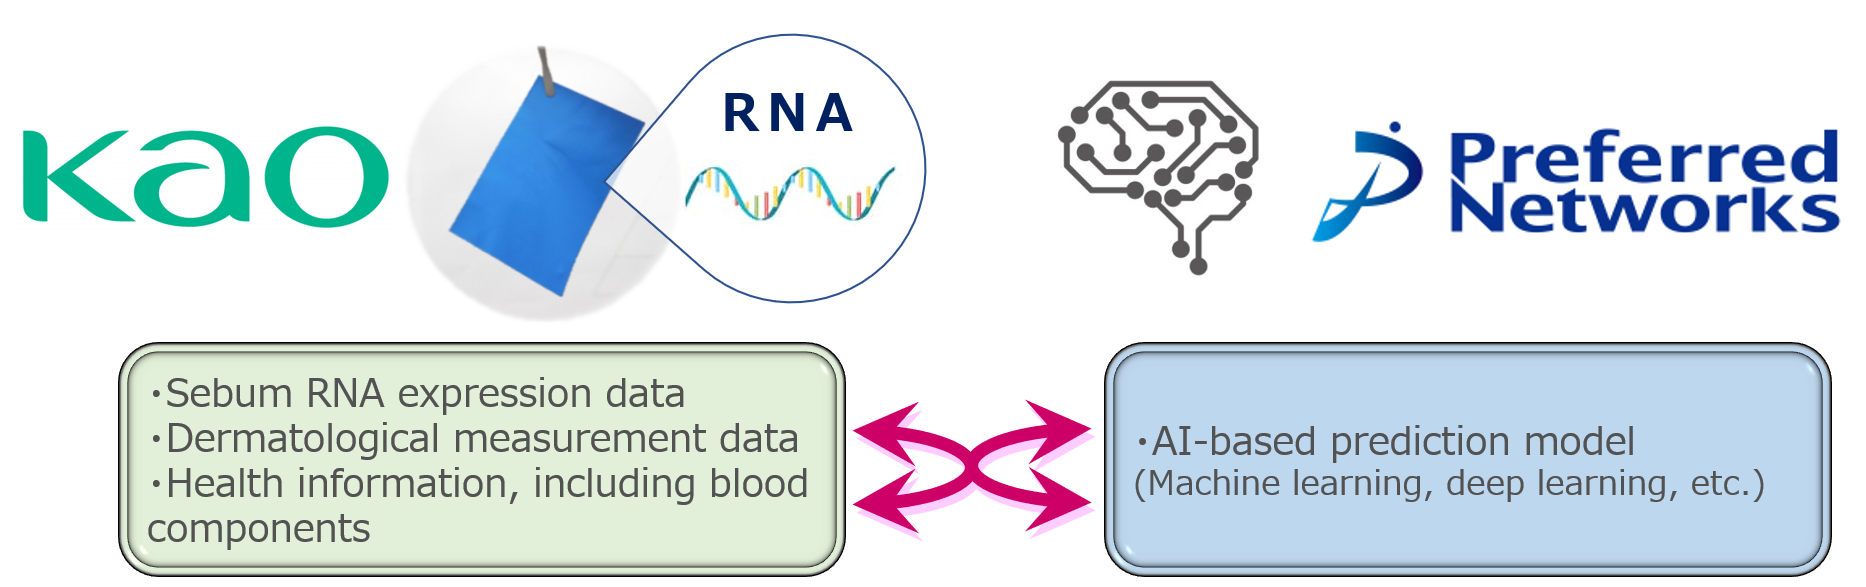 Kao and Preferred Networks Launch a Collaborative Project for Practical Applications of Sebum RNA Monitoring Technology